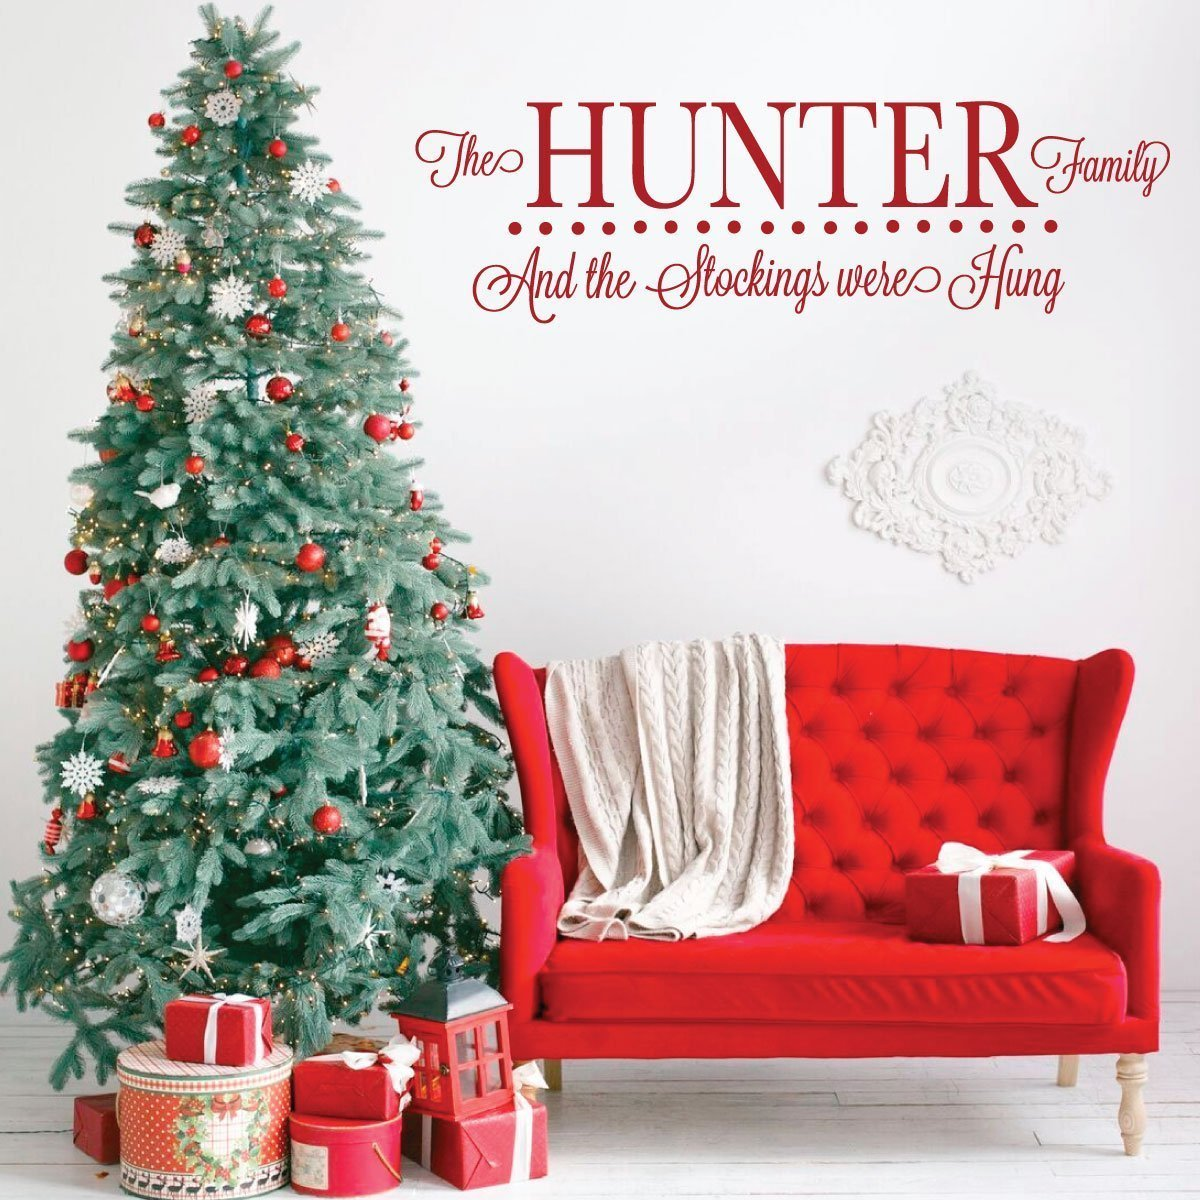 Personalized Christmas Decor.Personalized Christmas Wall Decal Vinyl Decor Wall Decal